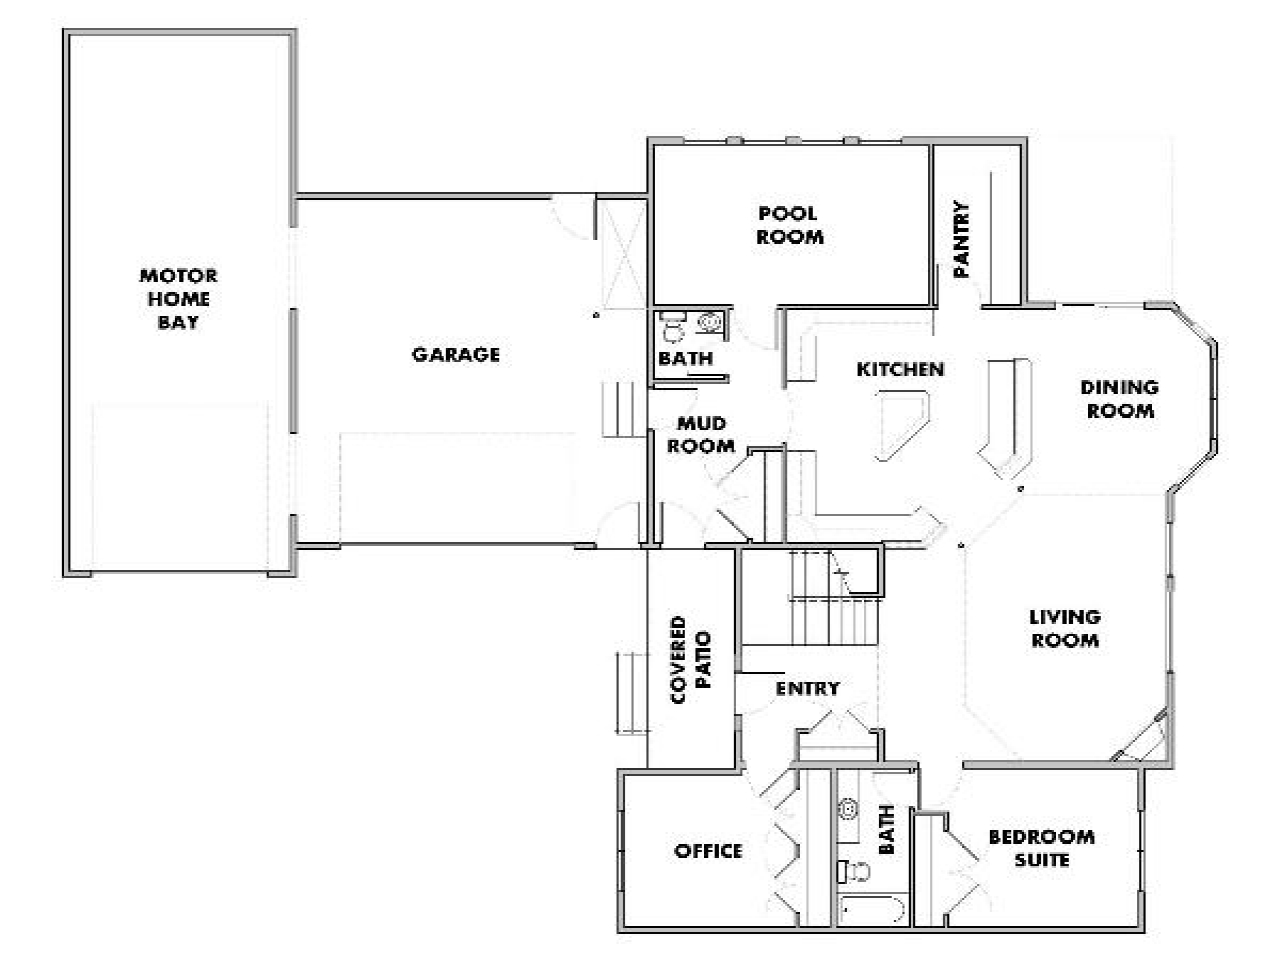 2 Story House Plans With Garage Simple 2 Story House Plans